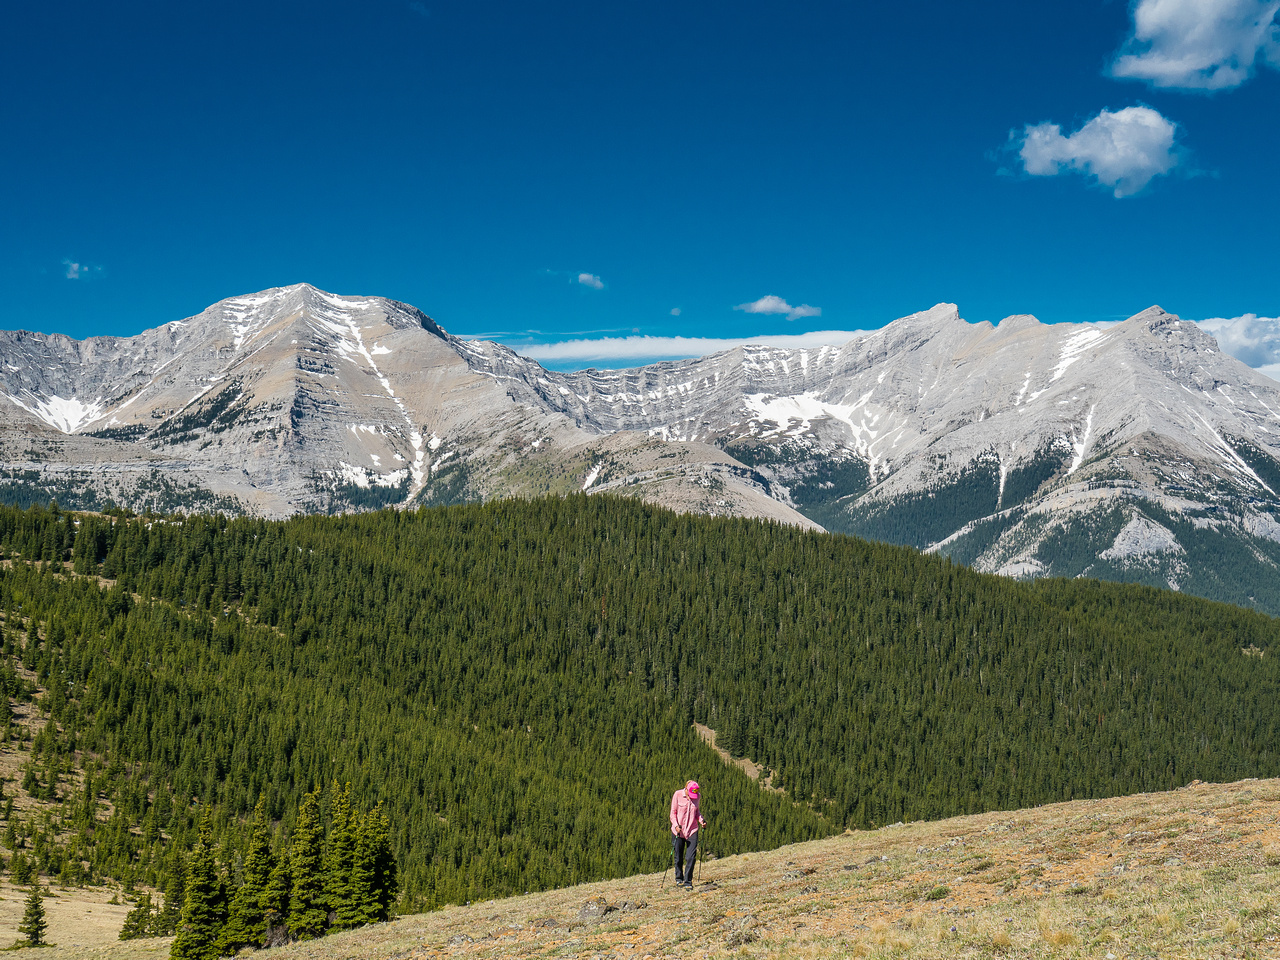 Hann comes up to the summit with Holy Cross (L) and Mount Head (R) in the background.